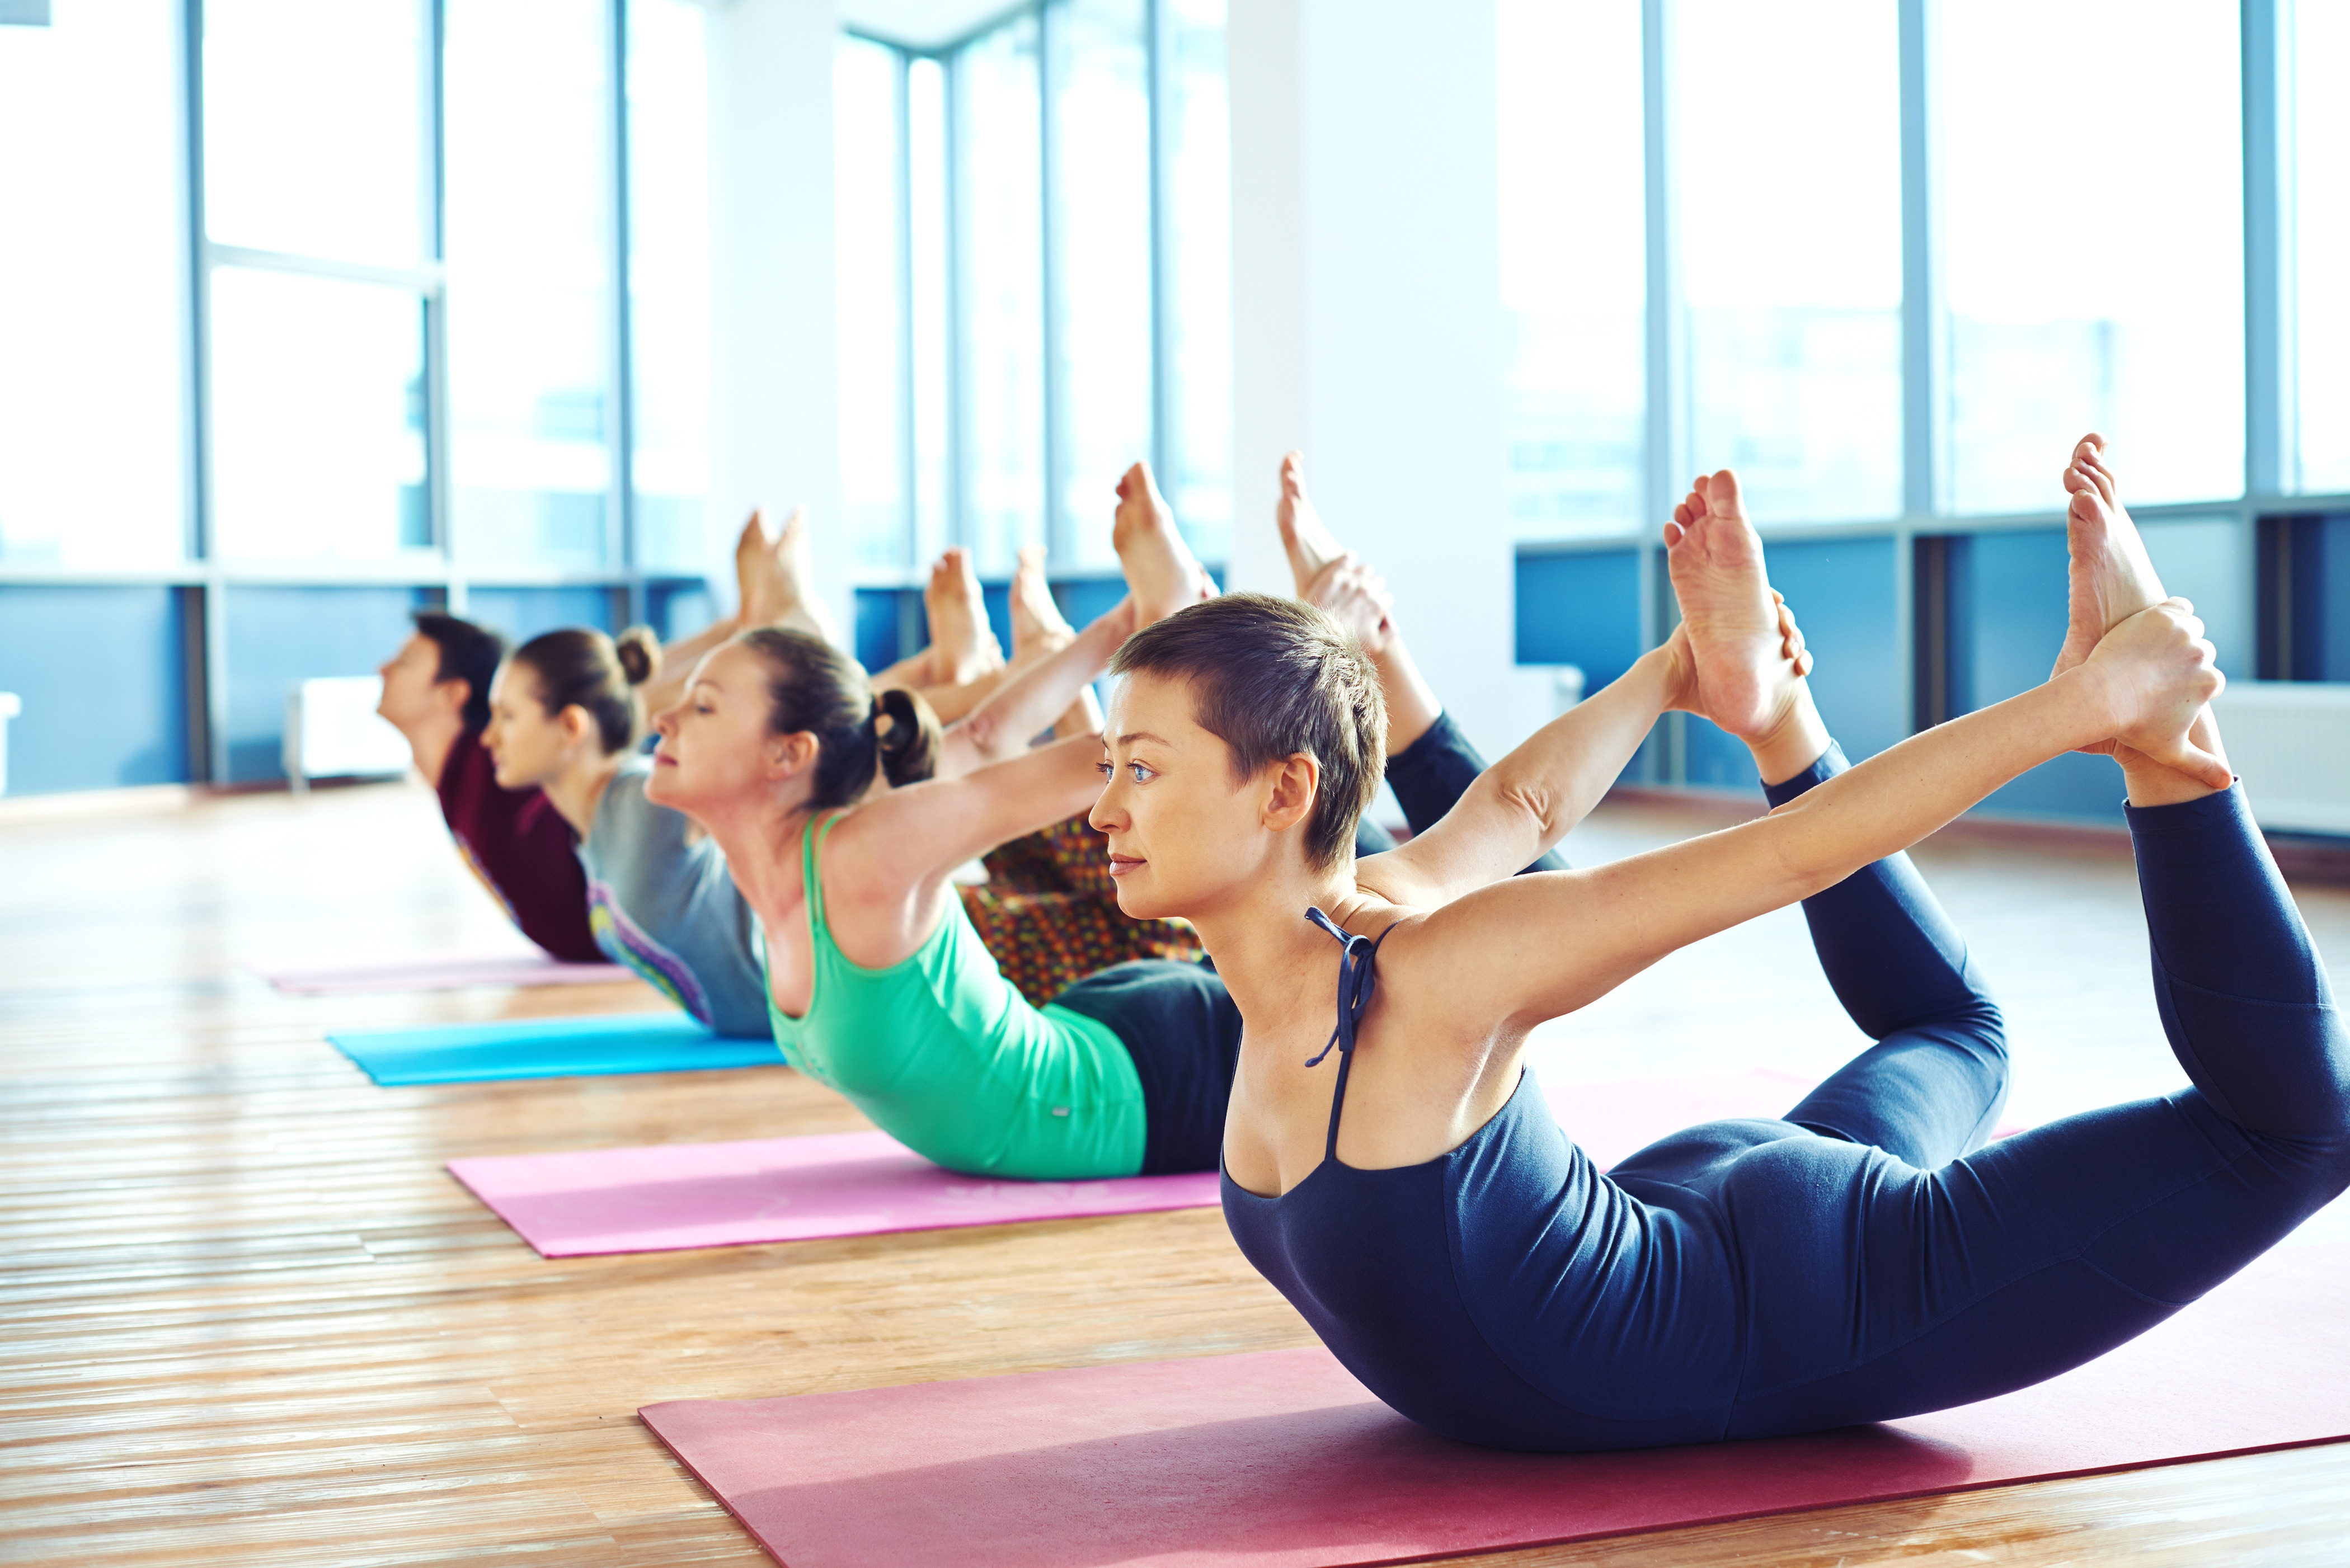 Innovative Classroom Yoga ~ The yoga paradox how can cause pain and treat it